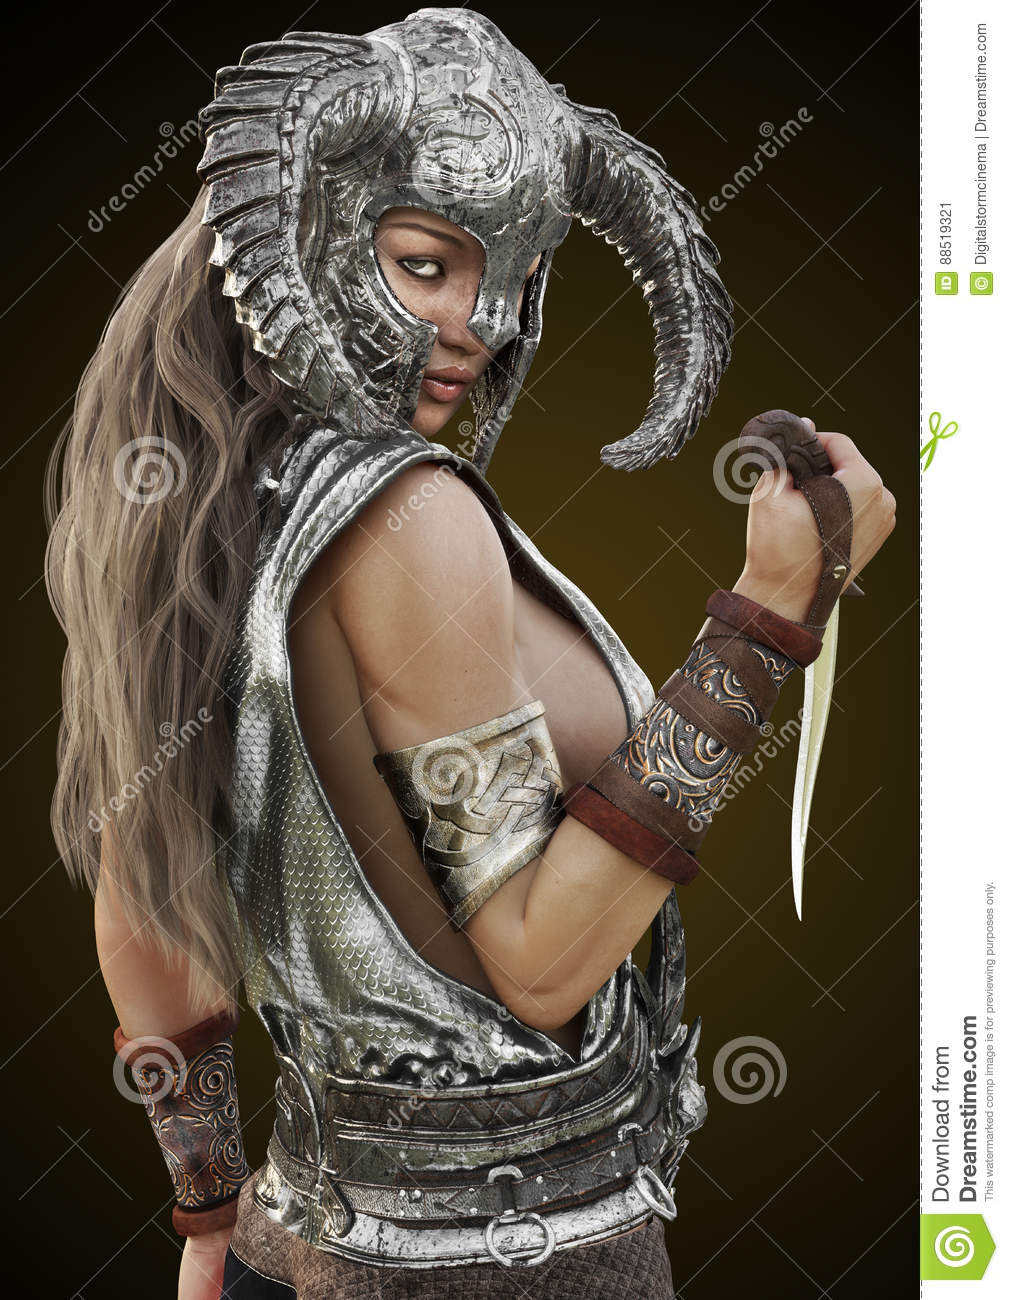 Fantasy rouge warrior female posing with helmet and dagger on a gradient background.